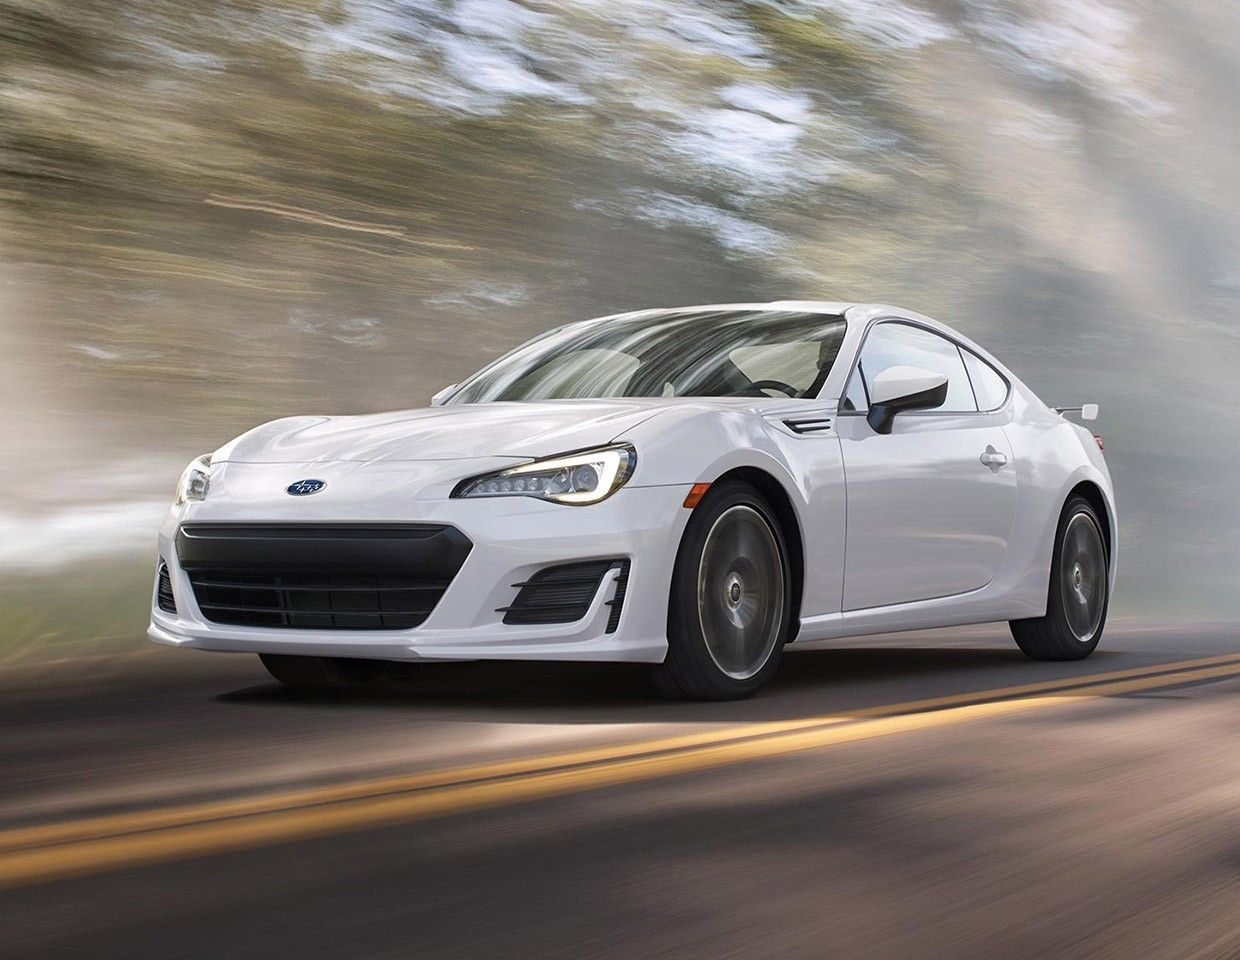 2019 Subaru Brz Roadster Review Specs And Release Date Redesign Price And Review Concept Redesign And Review Release Dat Subaru Brz Subaru Car Dealership